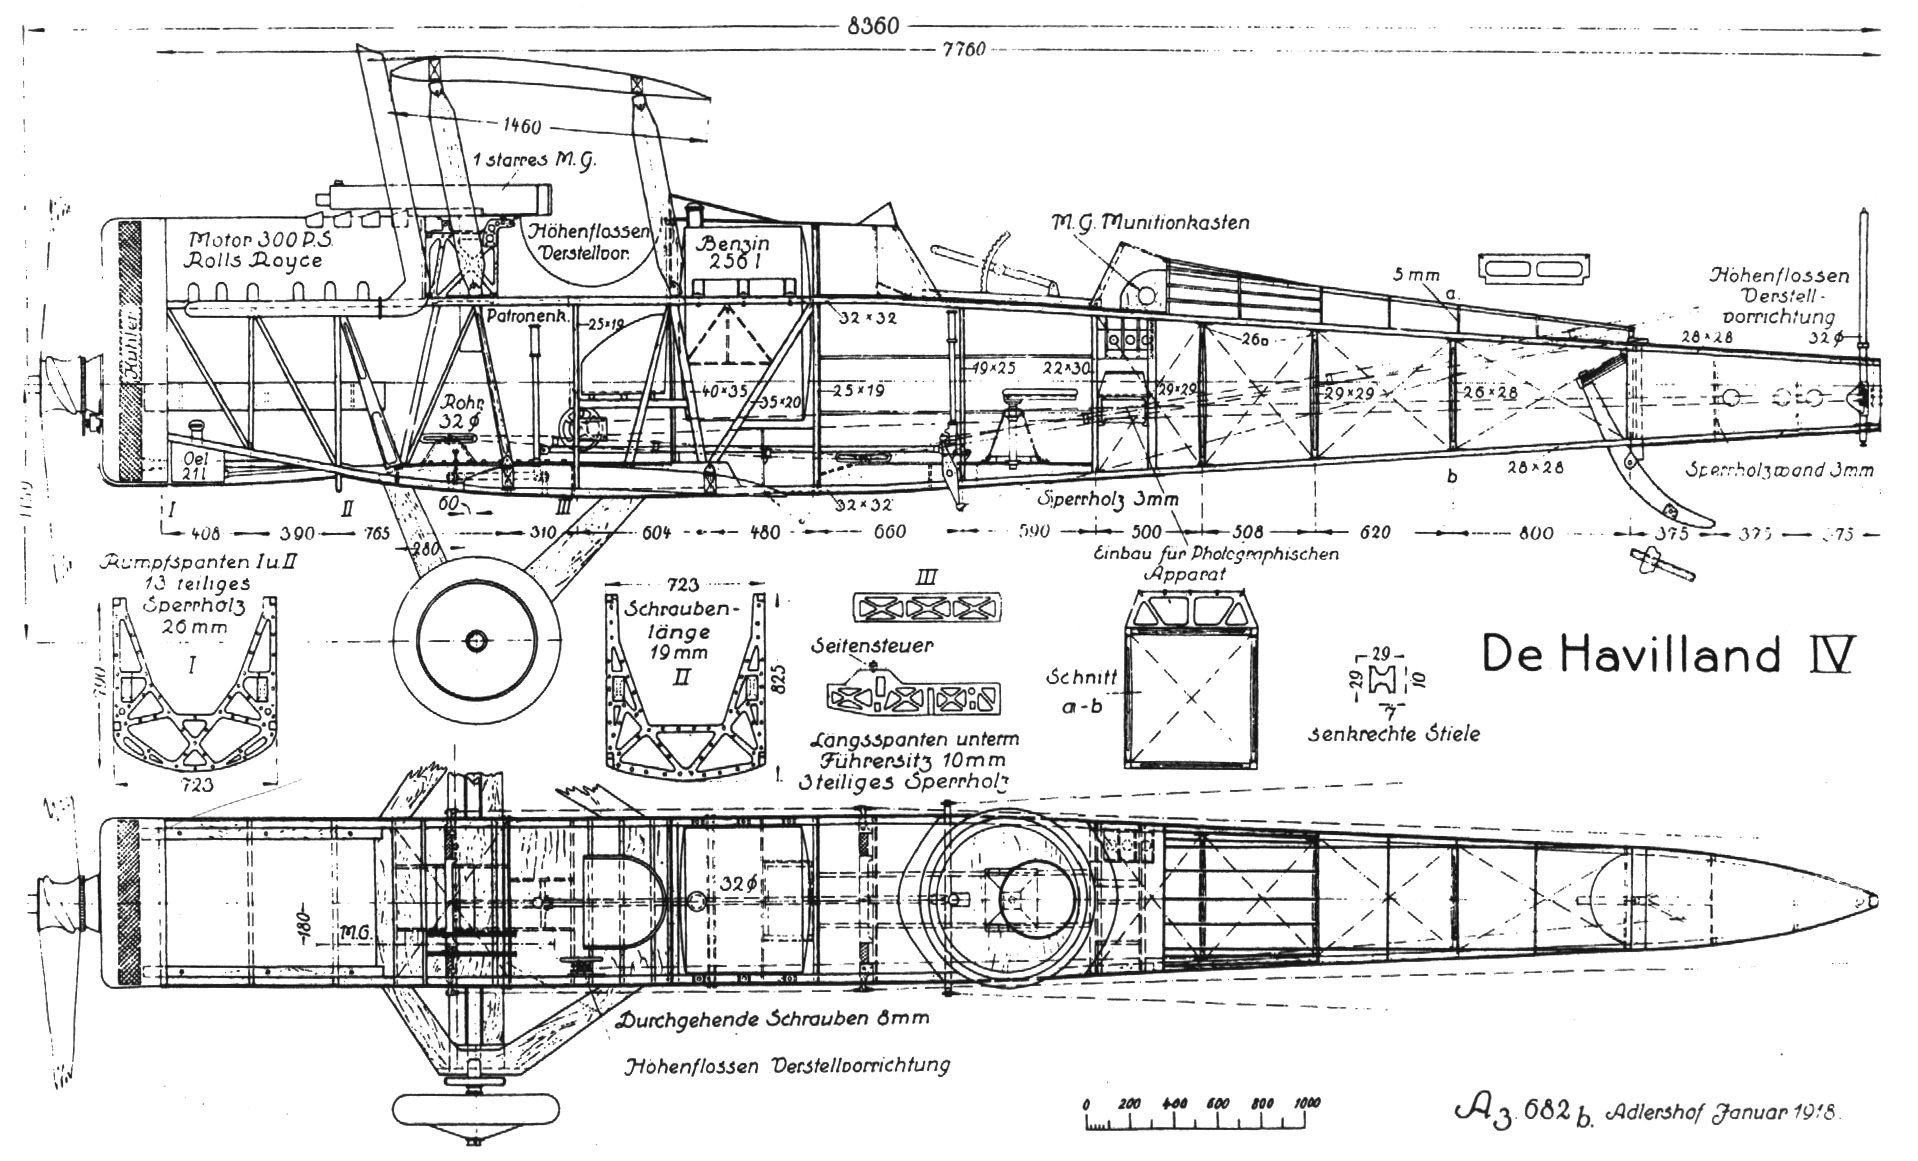 Dh4 Technical Specifications World War I Centennial Wwi Trench Diagram Dehavilland 4 Fuselage Structure